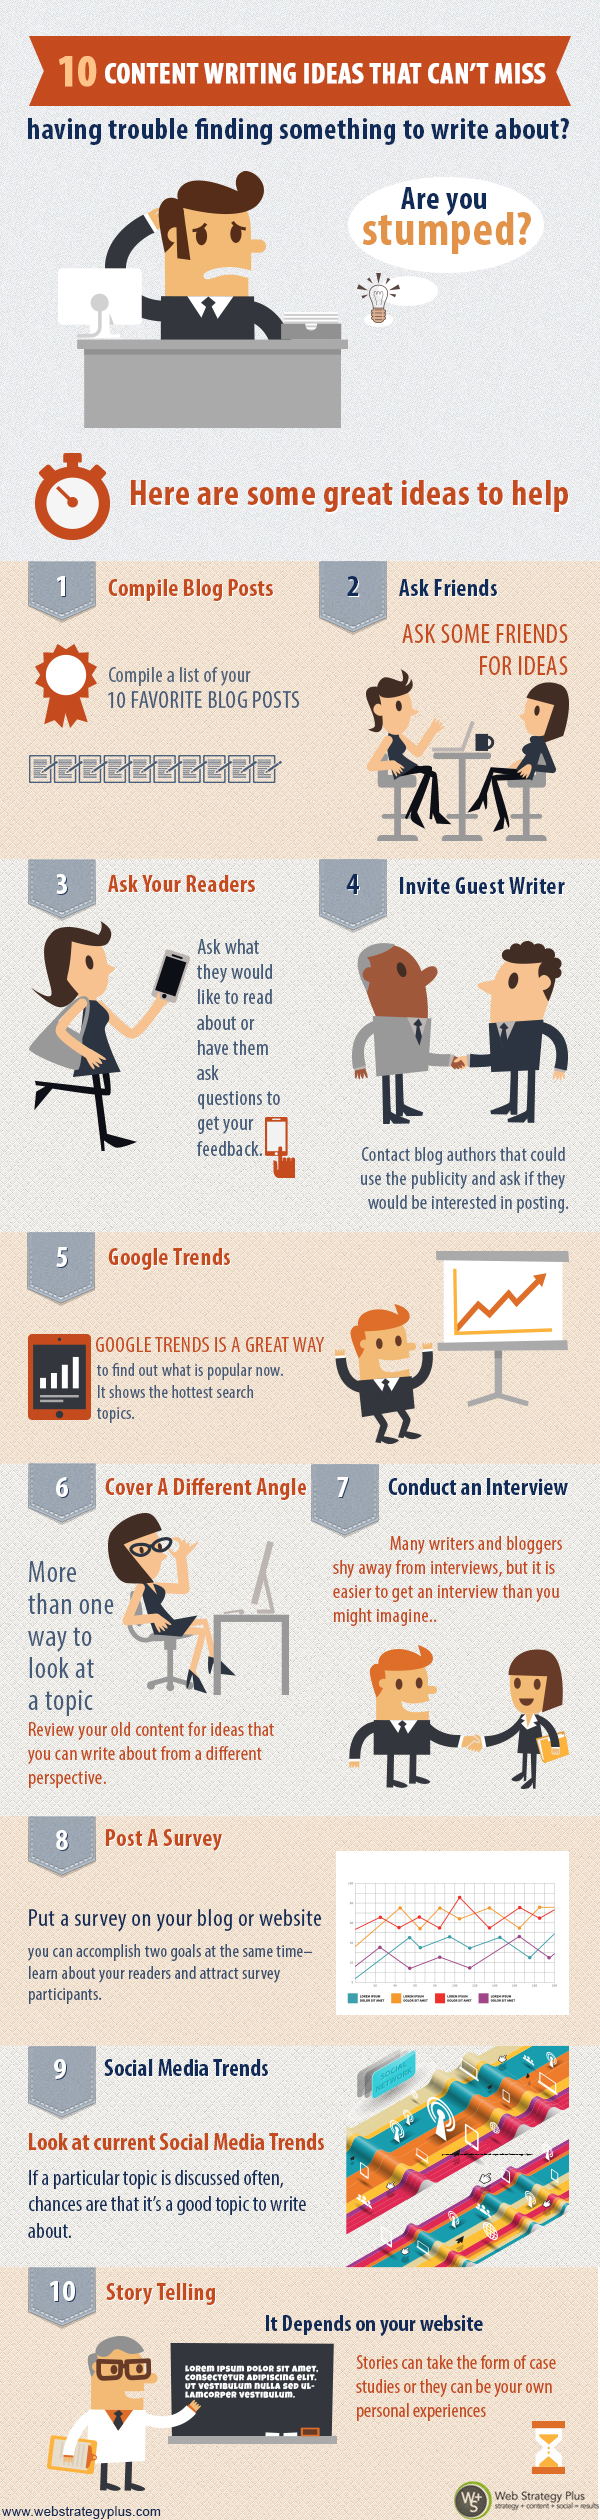 Infographic - 10 Content Writing Ideas That Can't Miss